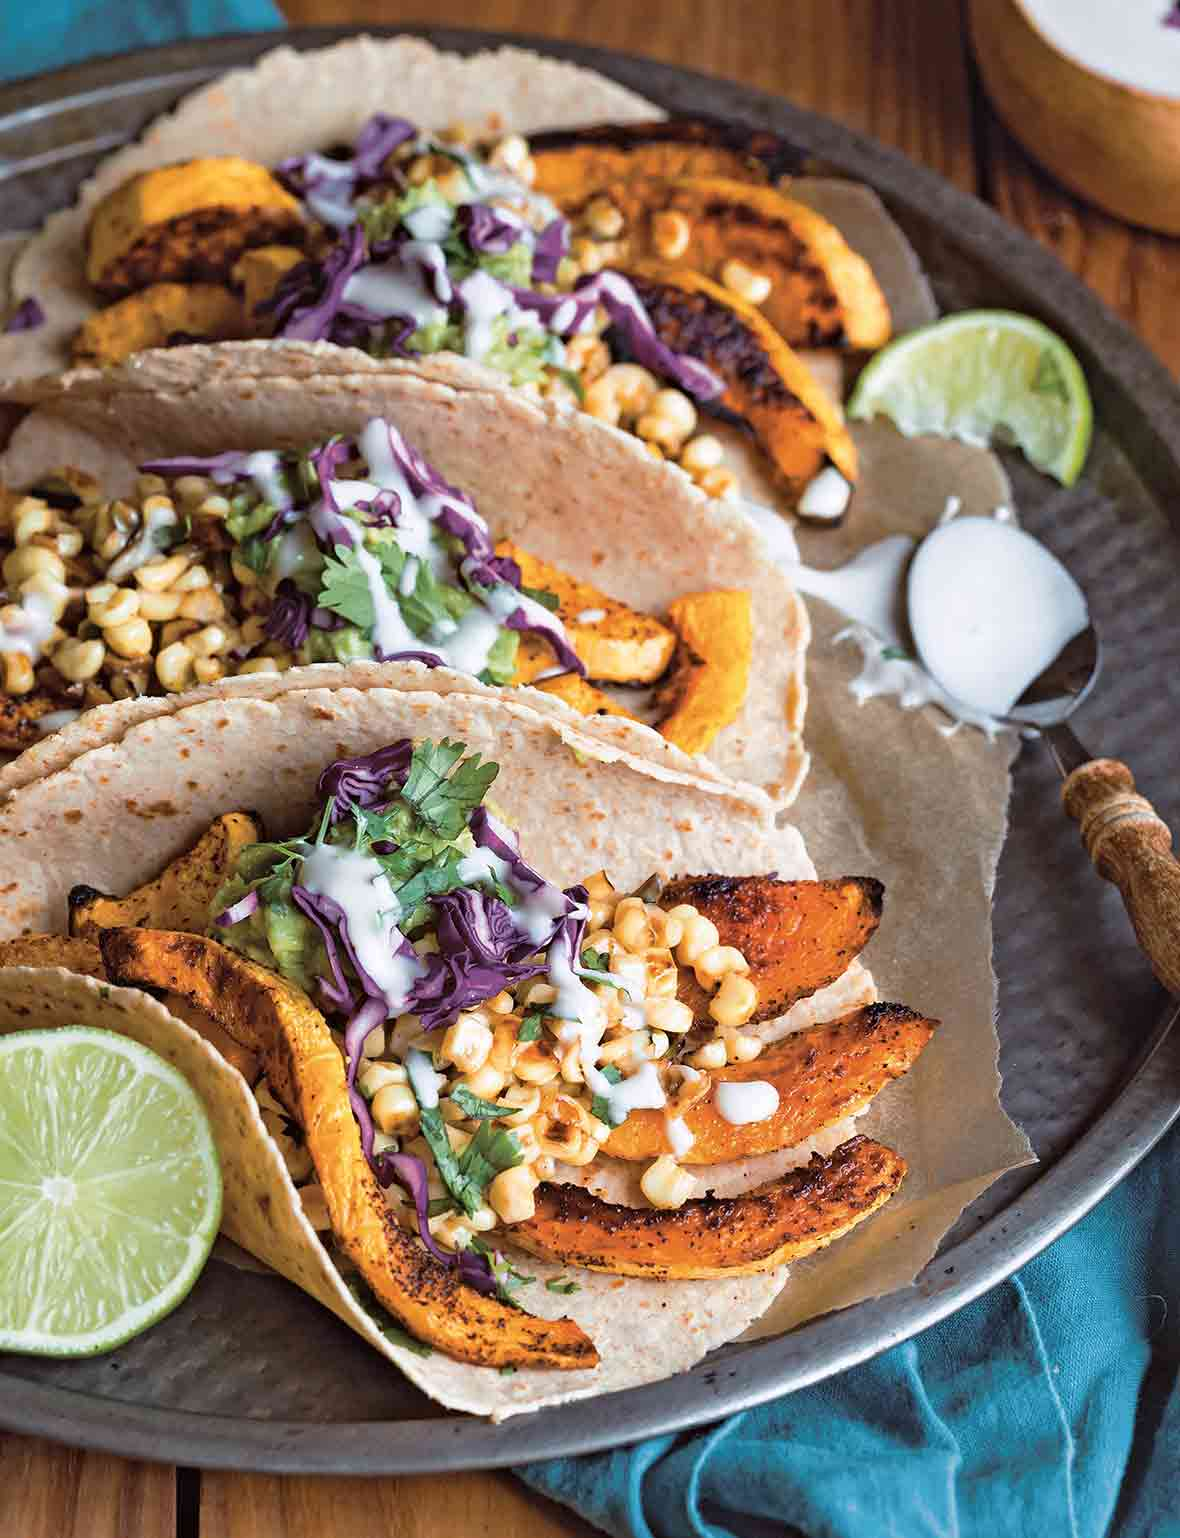 A platter of butternut squash tacos made with tortillas filled with strips of roasted squash, corn, cabbage, guacamole, and sour cream